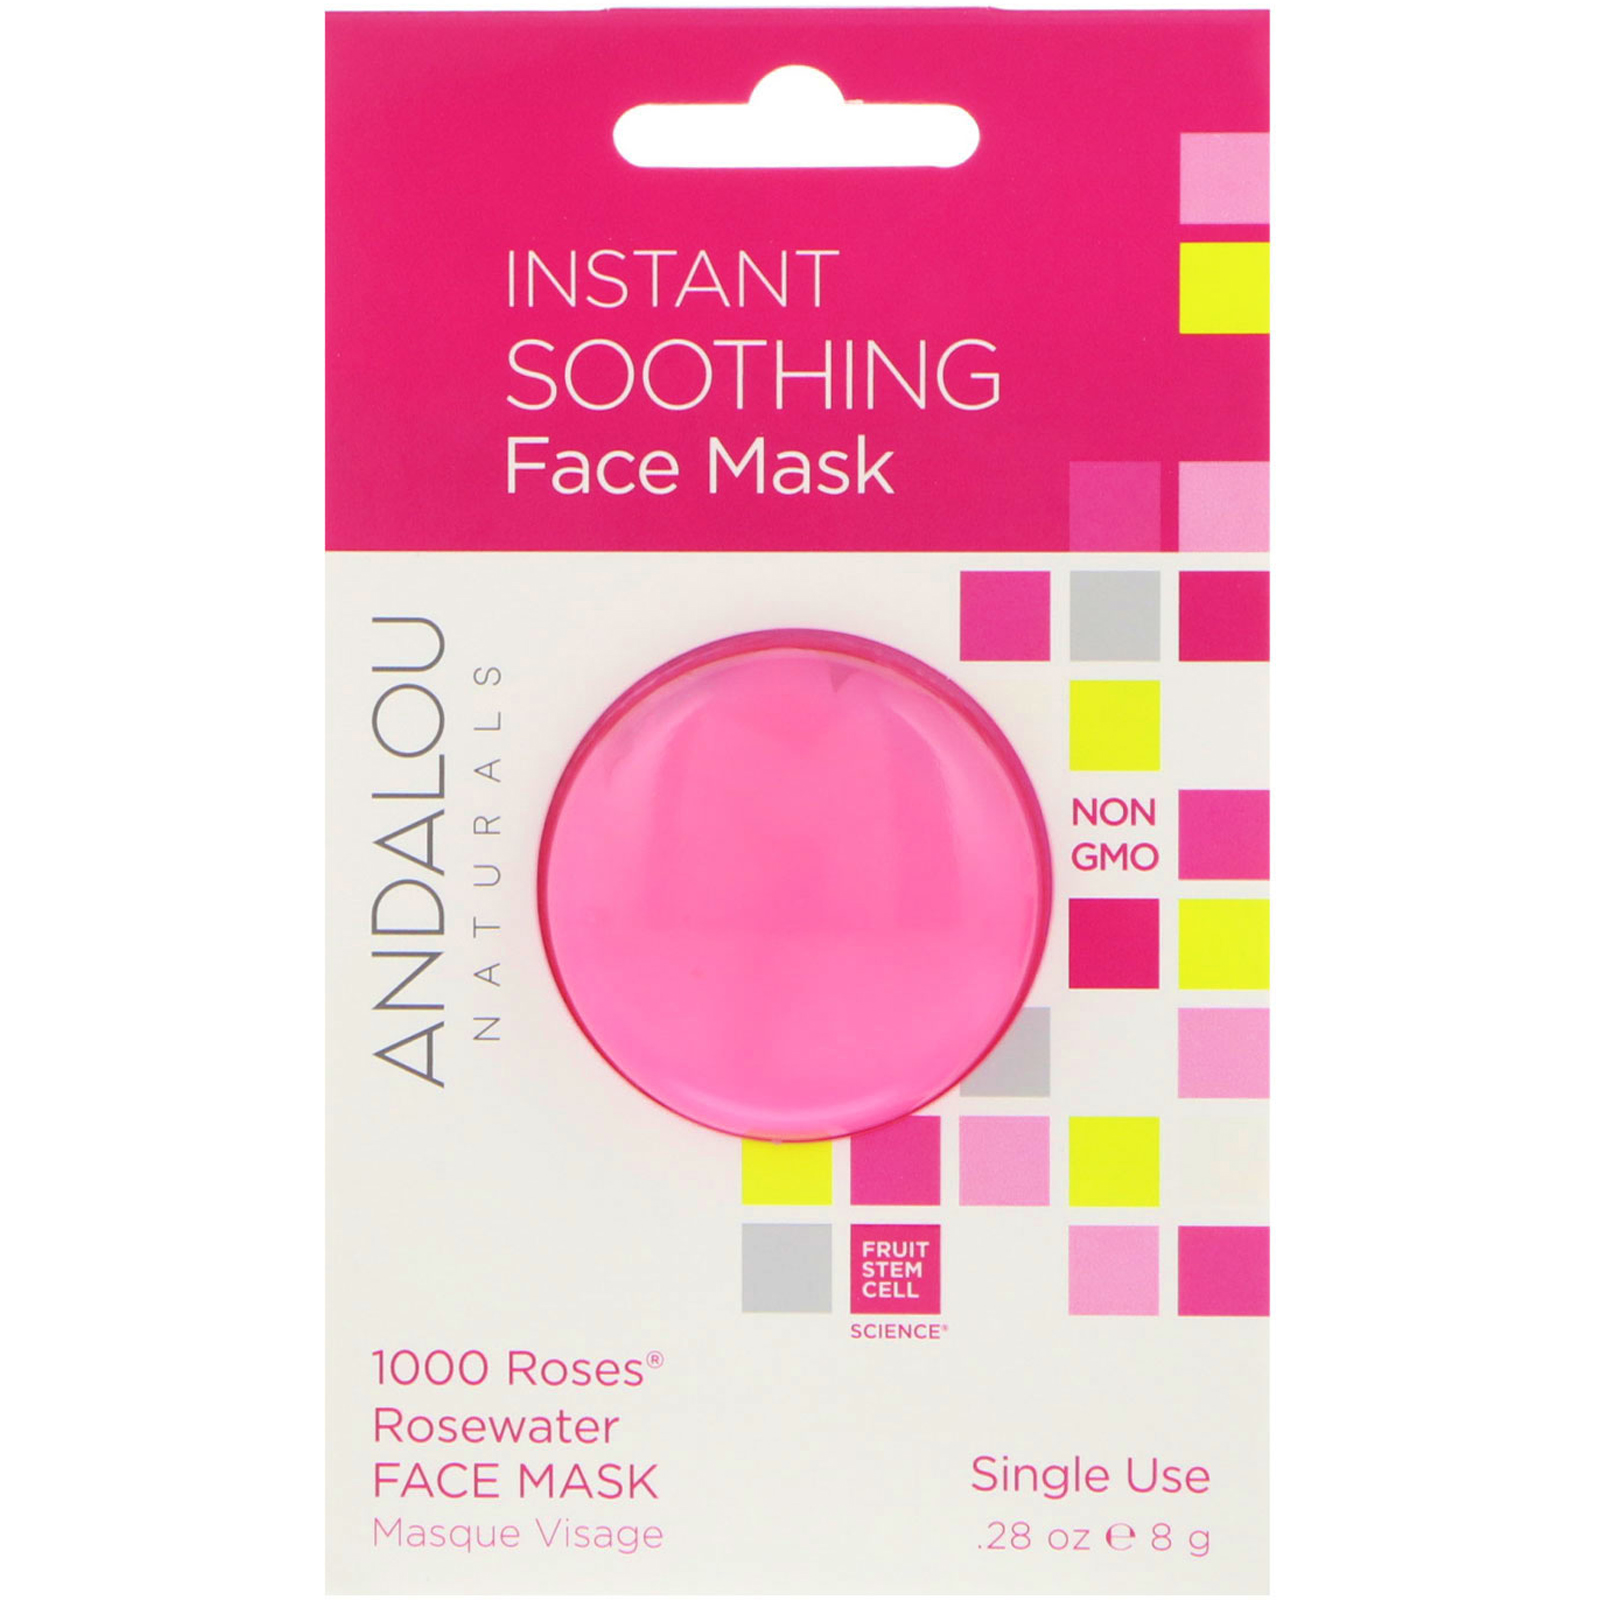 6 Pack - Andalou Naturals 1000 Roses Rosewater Mask 1.7 oz Christie Brinkley Closeup Instant Wrinkle Reducer and Treatment, 0.33 fl oz